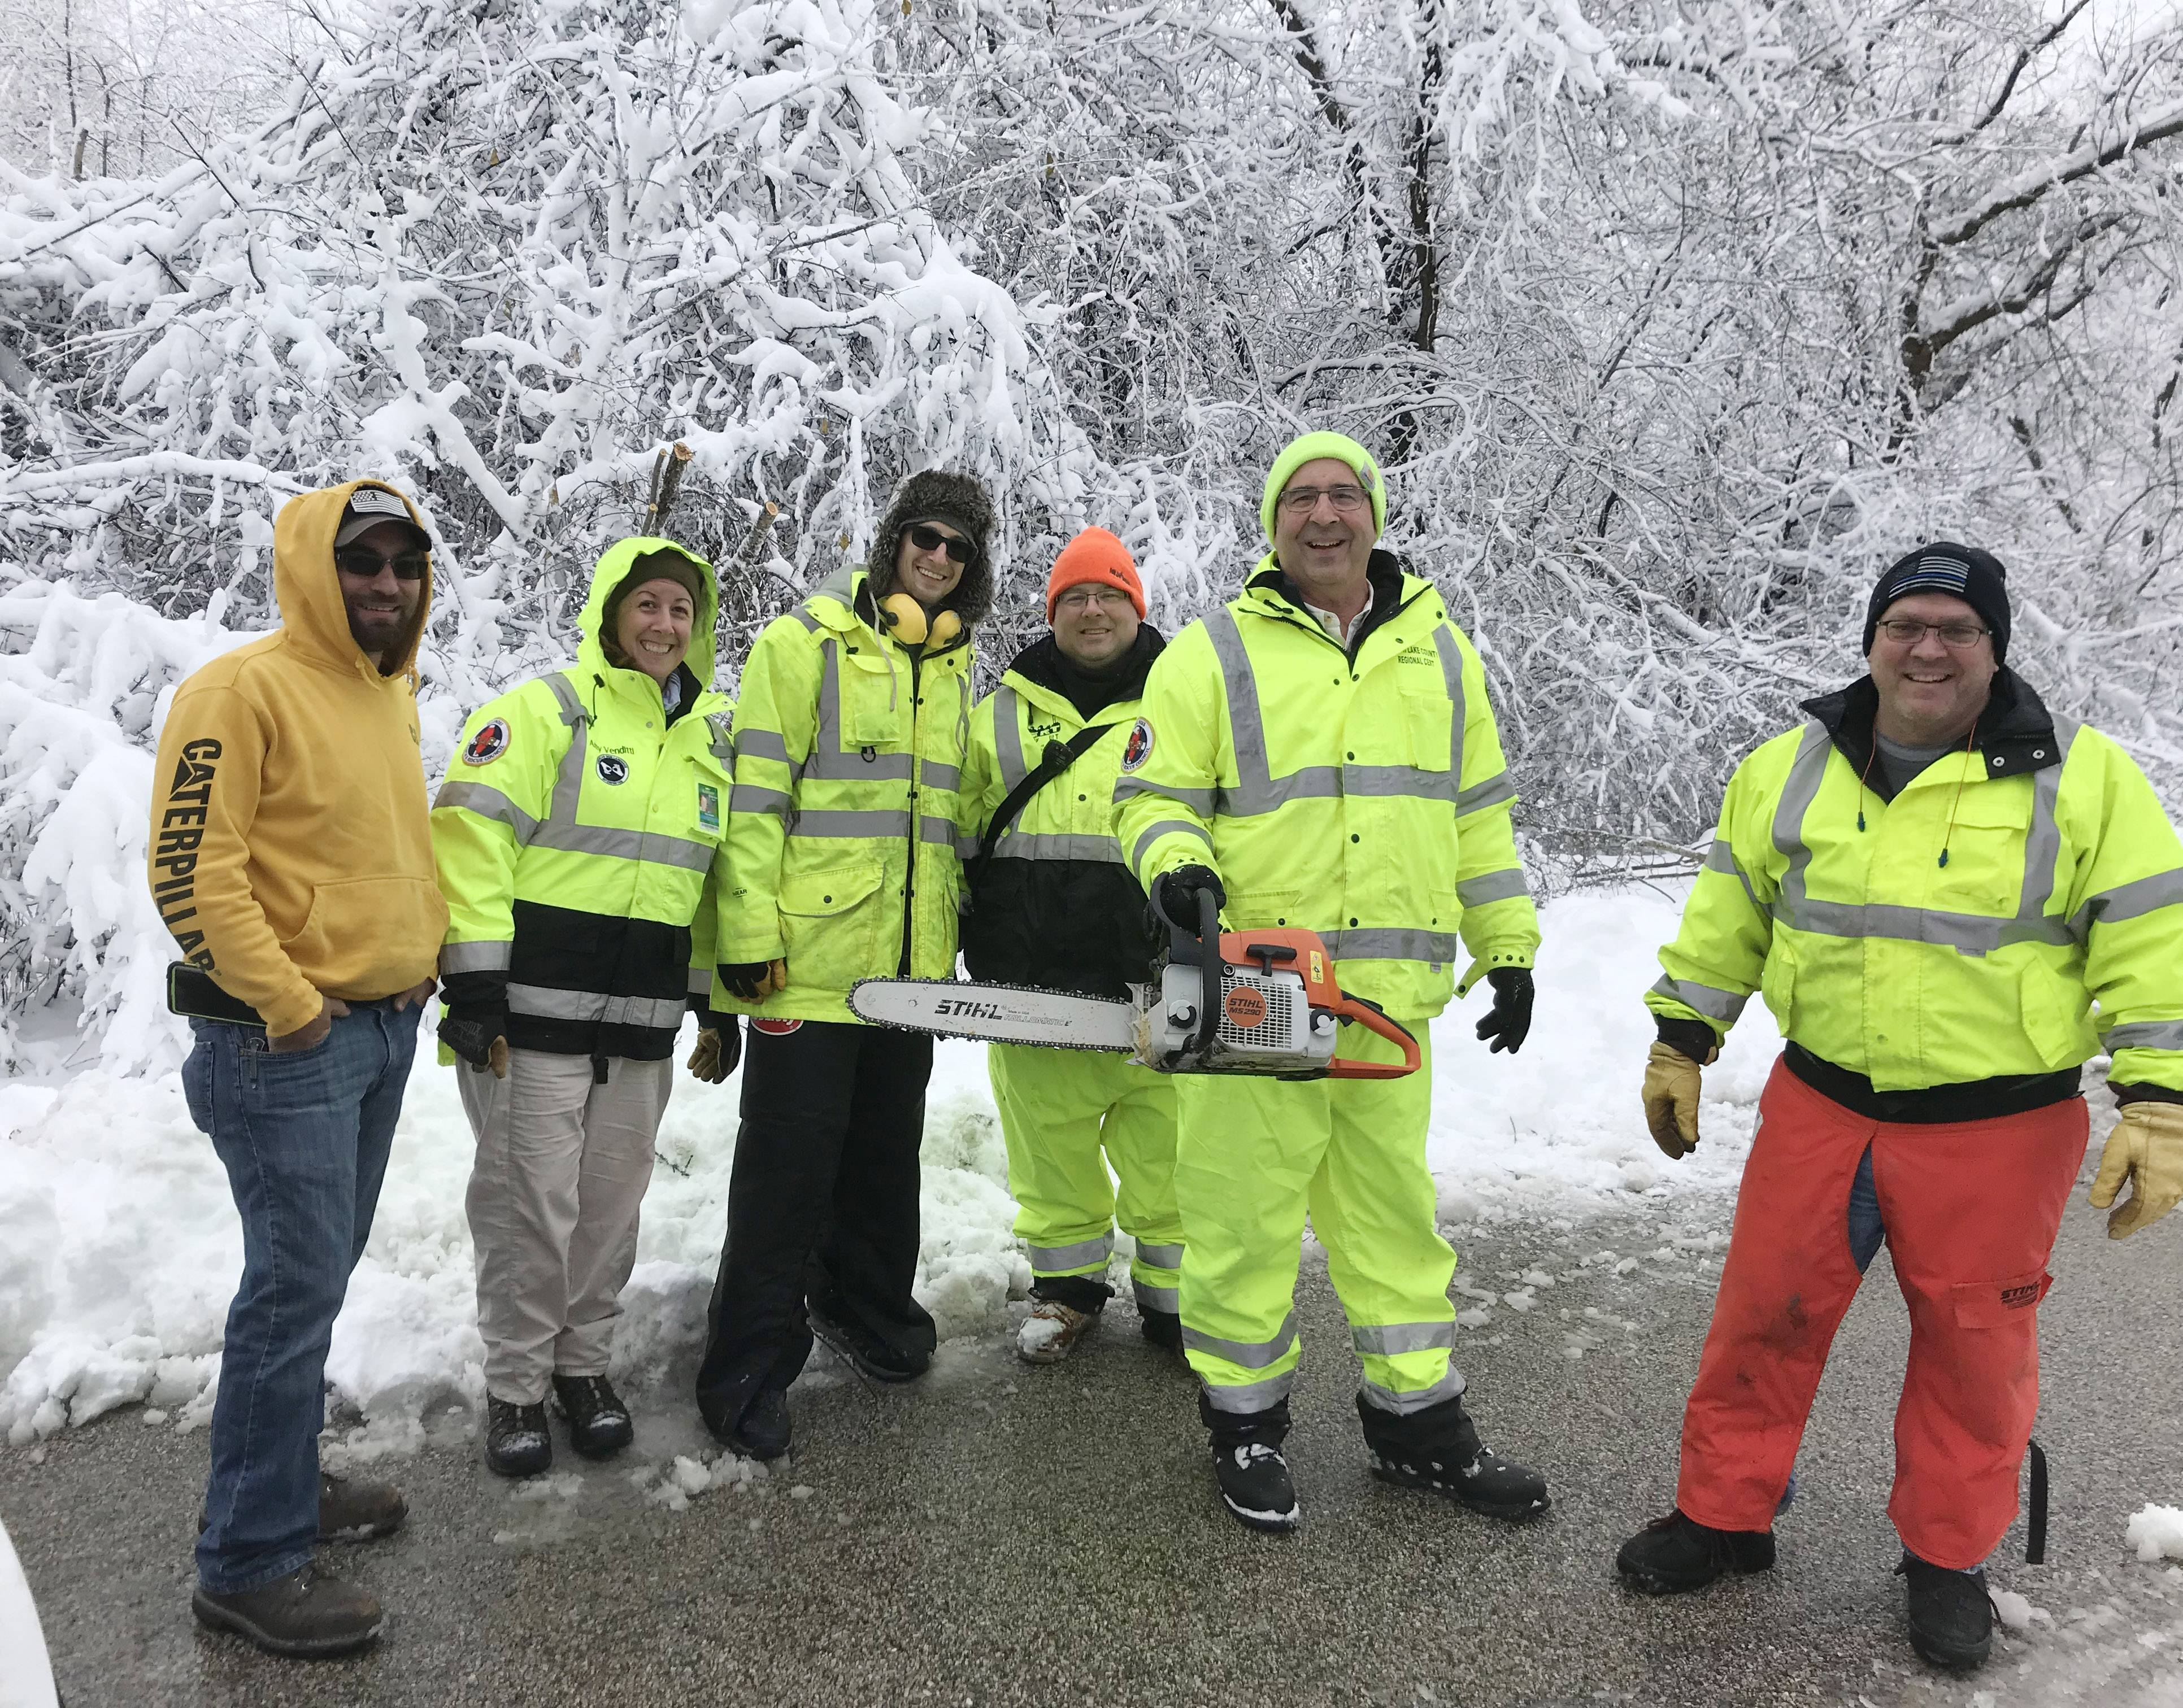 Emergency response team members who worked on the driveway are from left, Eric Schildkraut, Amy Venditti, Jeff Fox, Bob Dobson, Rob Lang and Gregg Heineman. Not shown is Doug Ahlgrim.